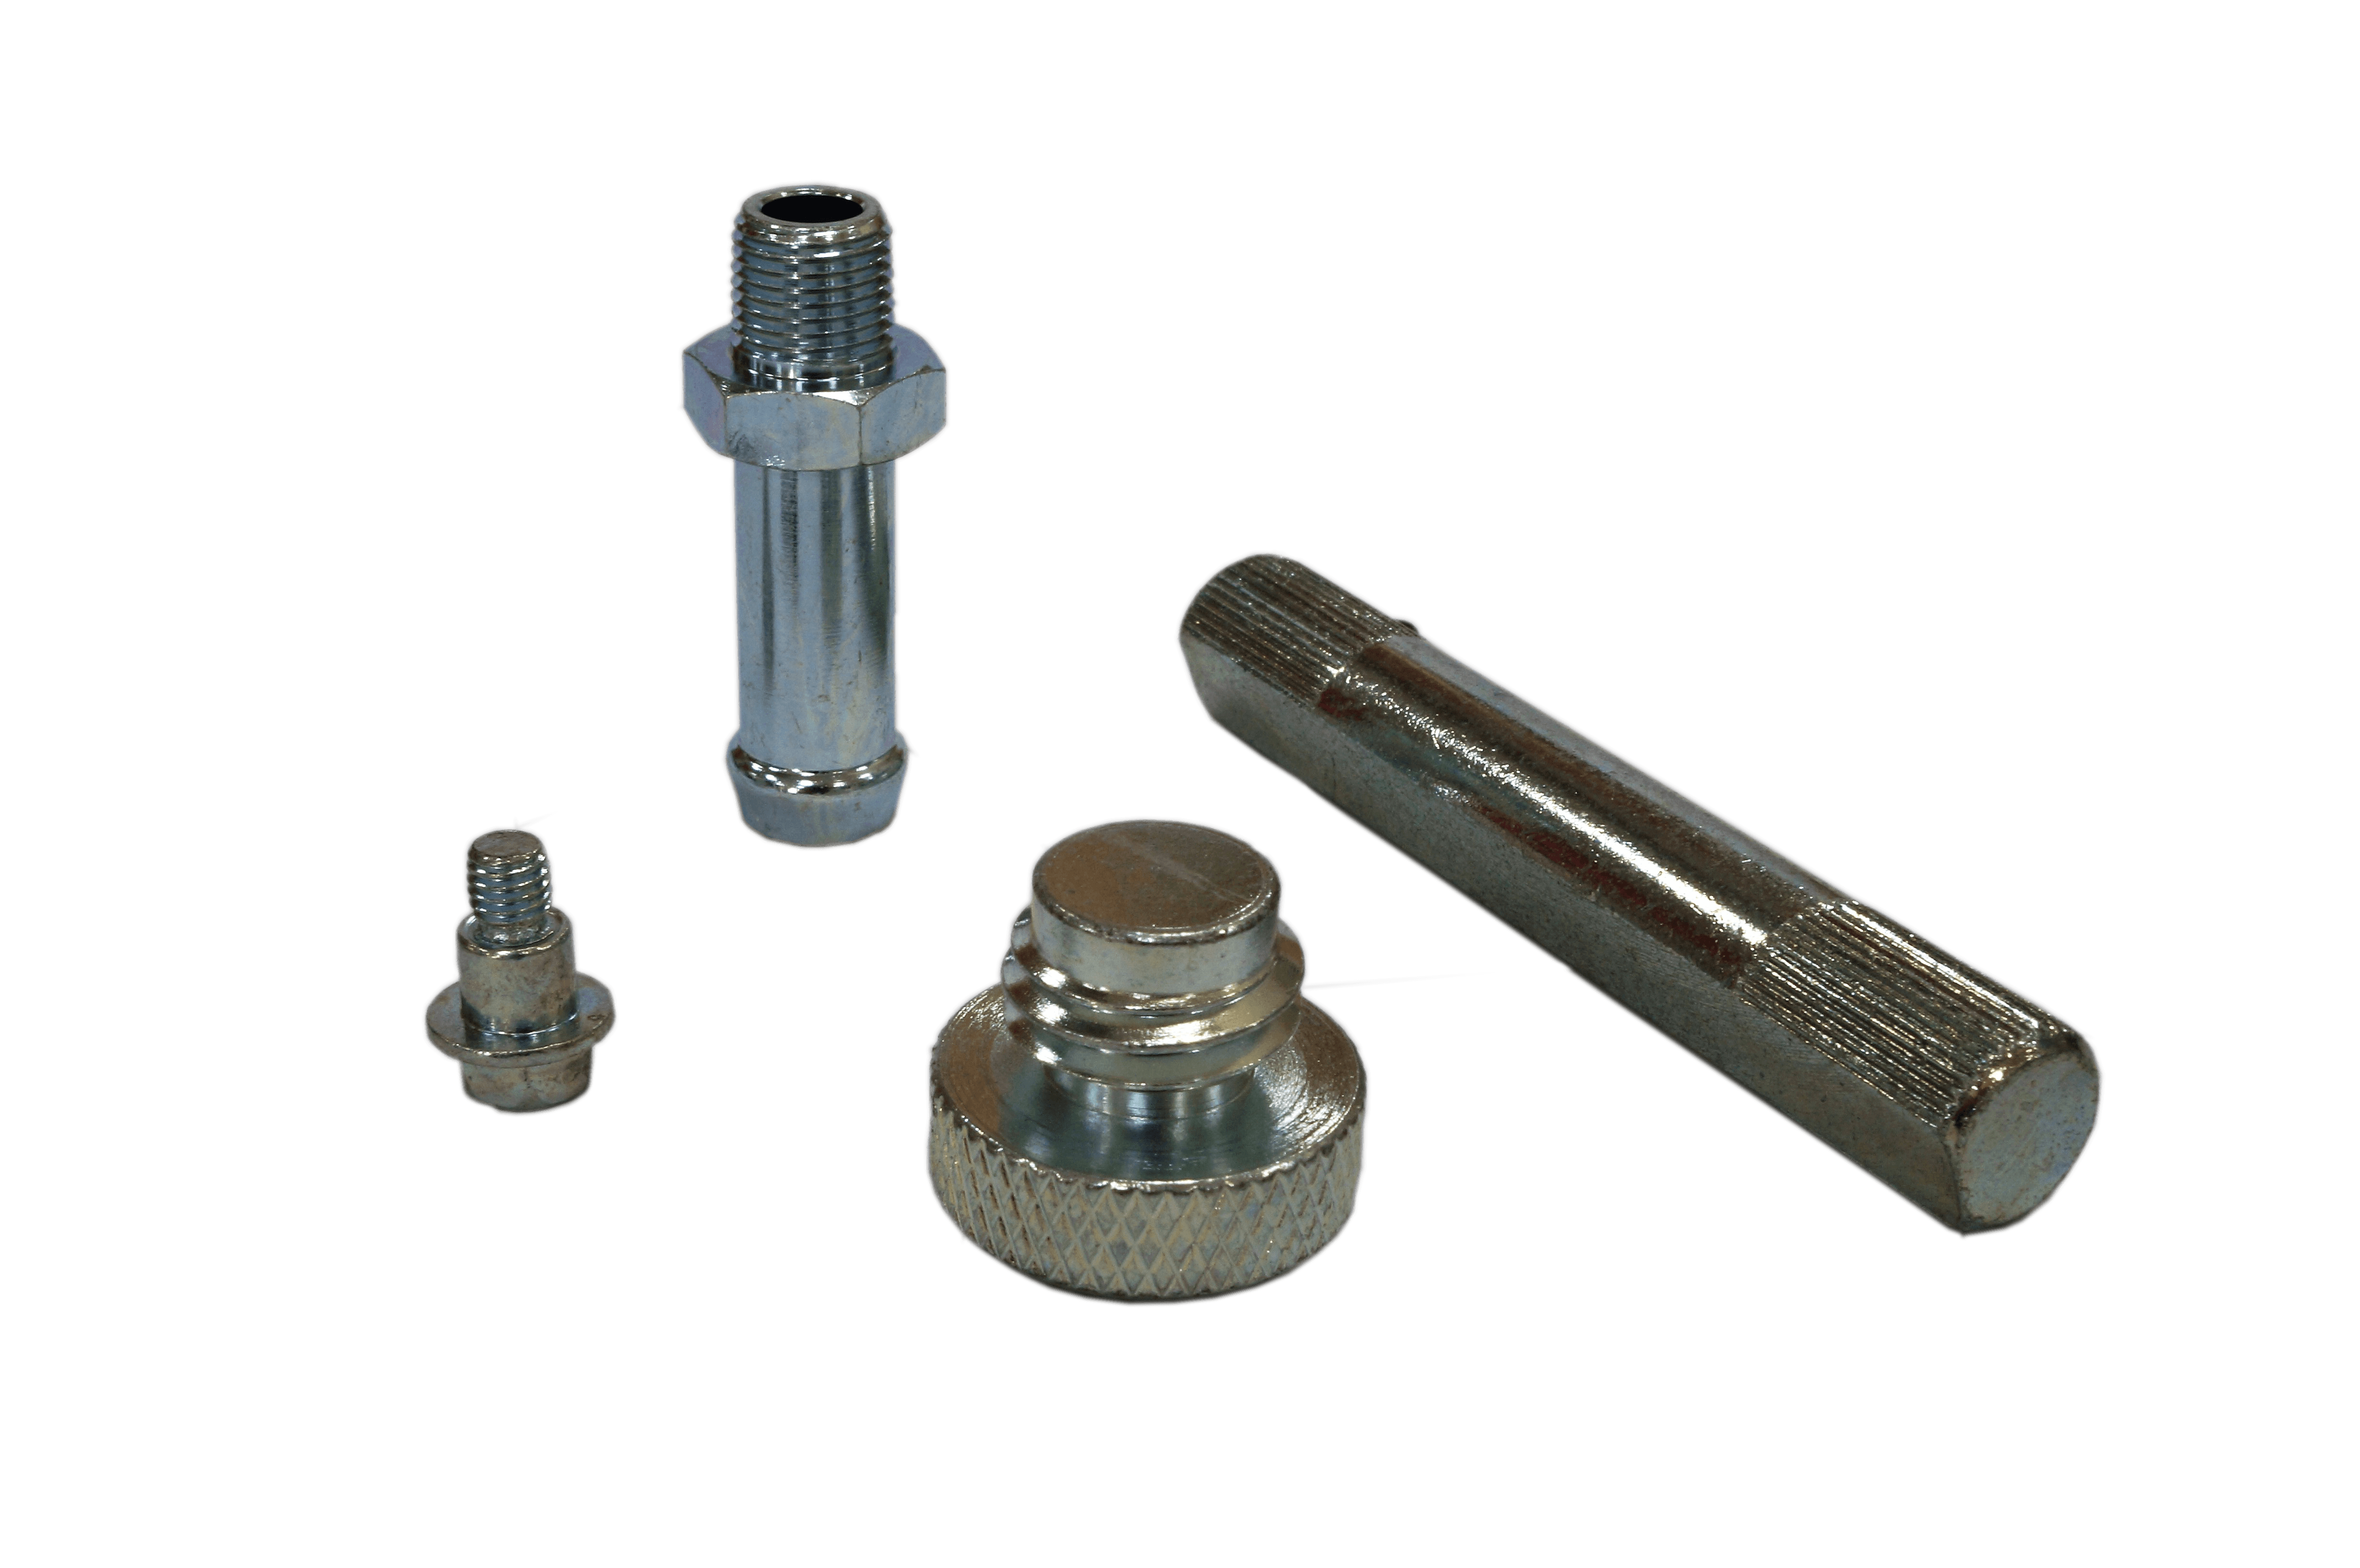 4x4 Pick Up Bolts for Vehicle Fastener made by Sunny Screw Industry 三能螺栓工業股份有限公司 - MatchSupplier.com